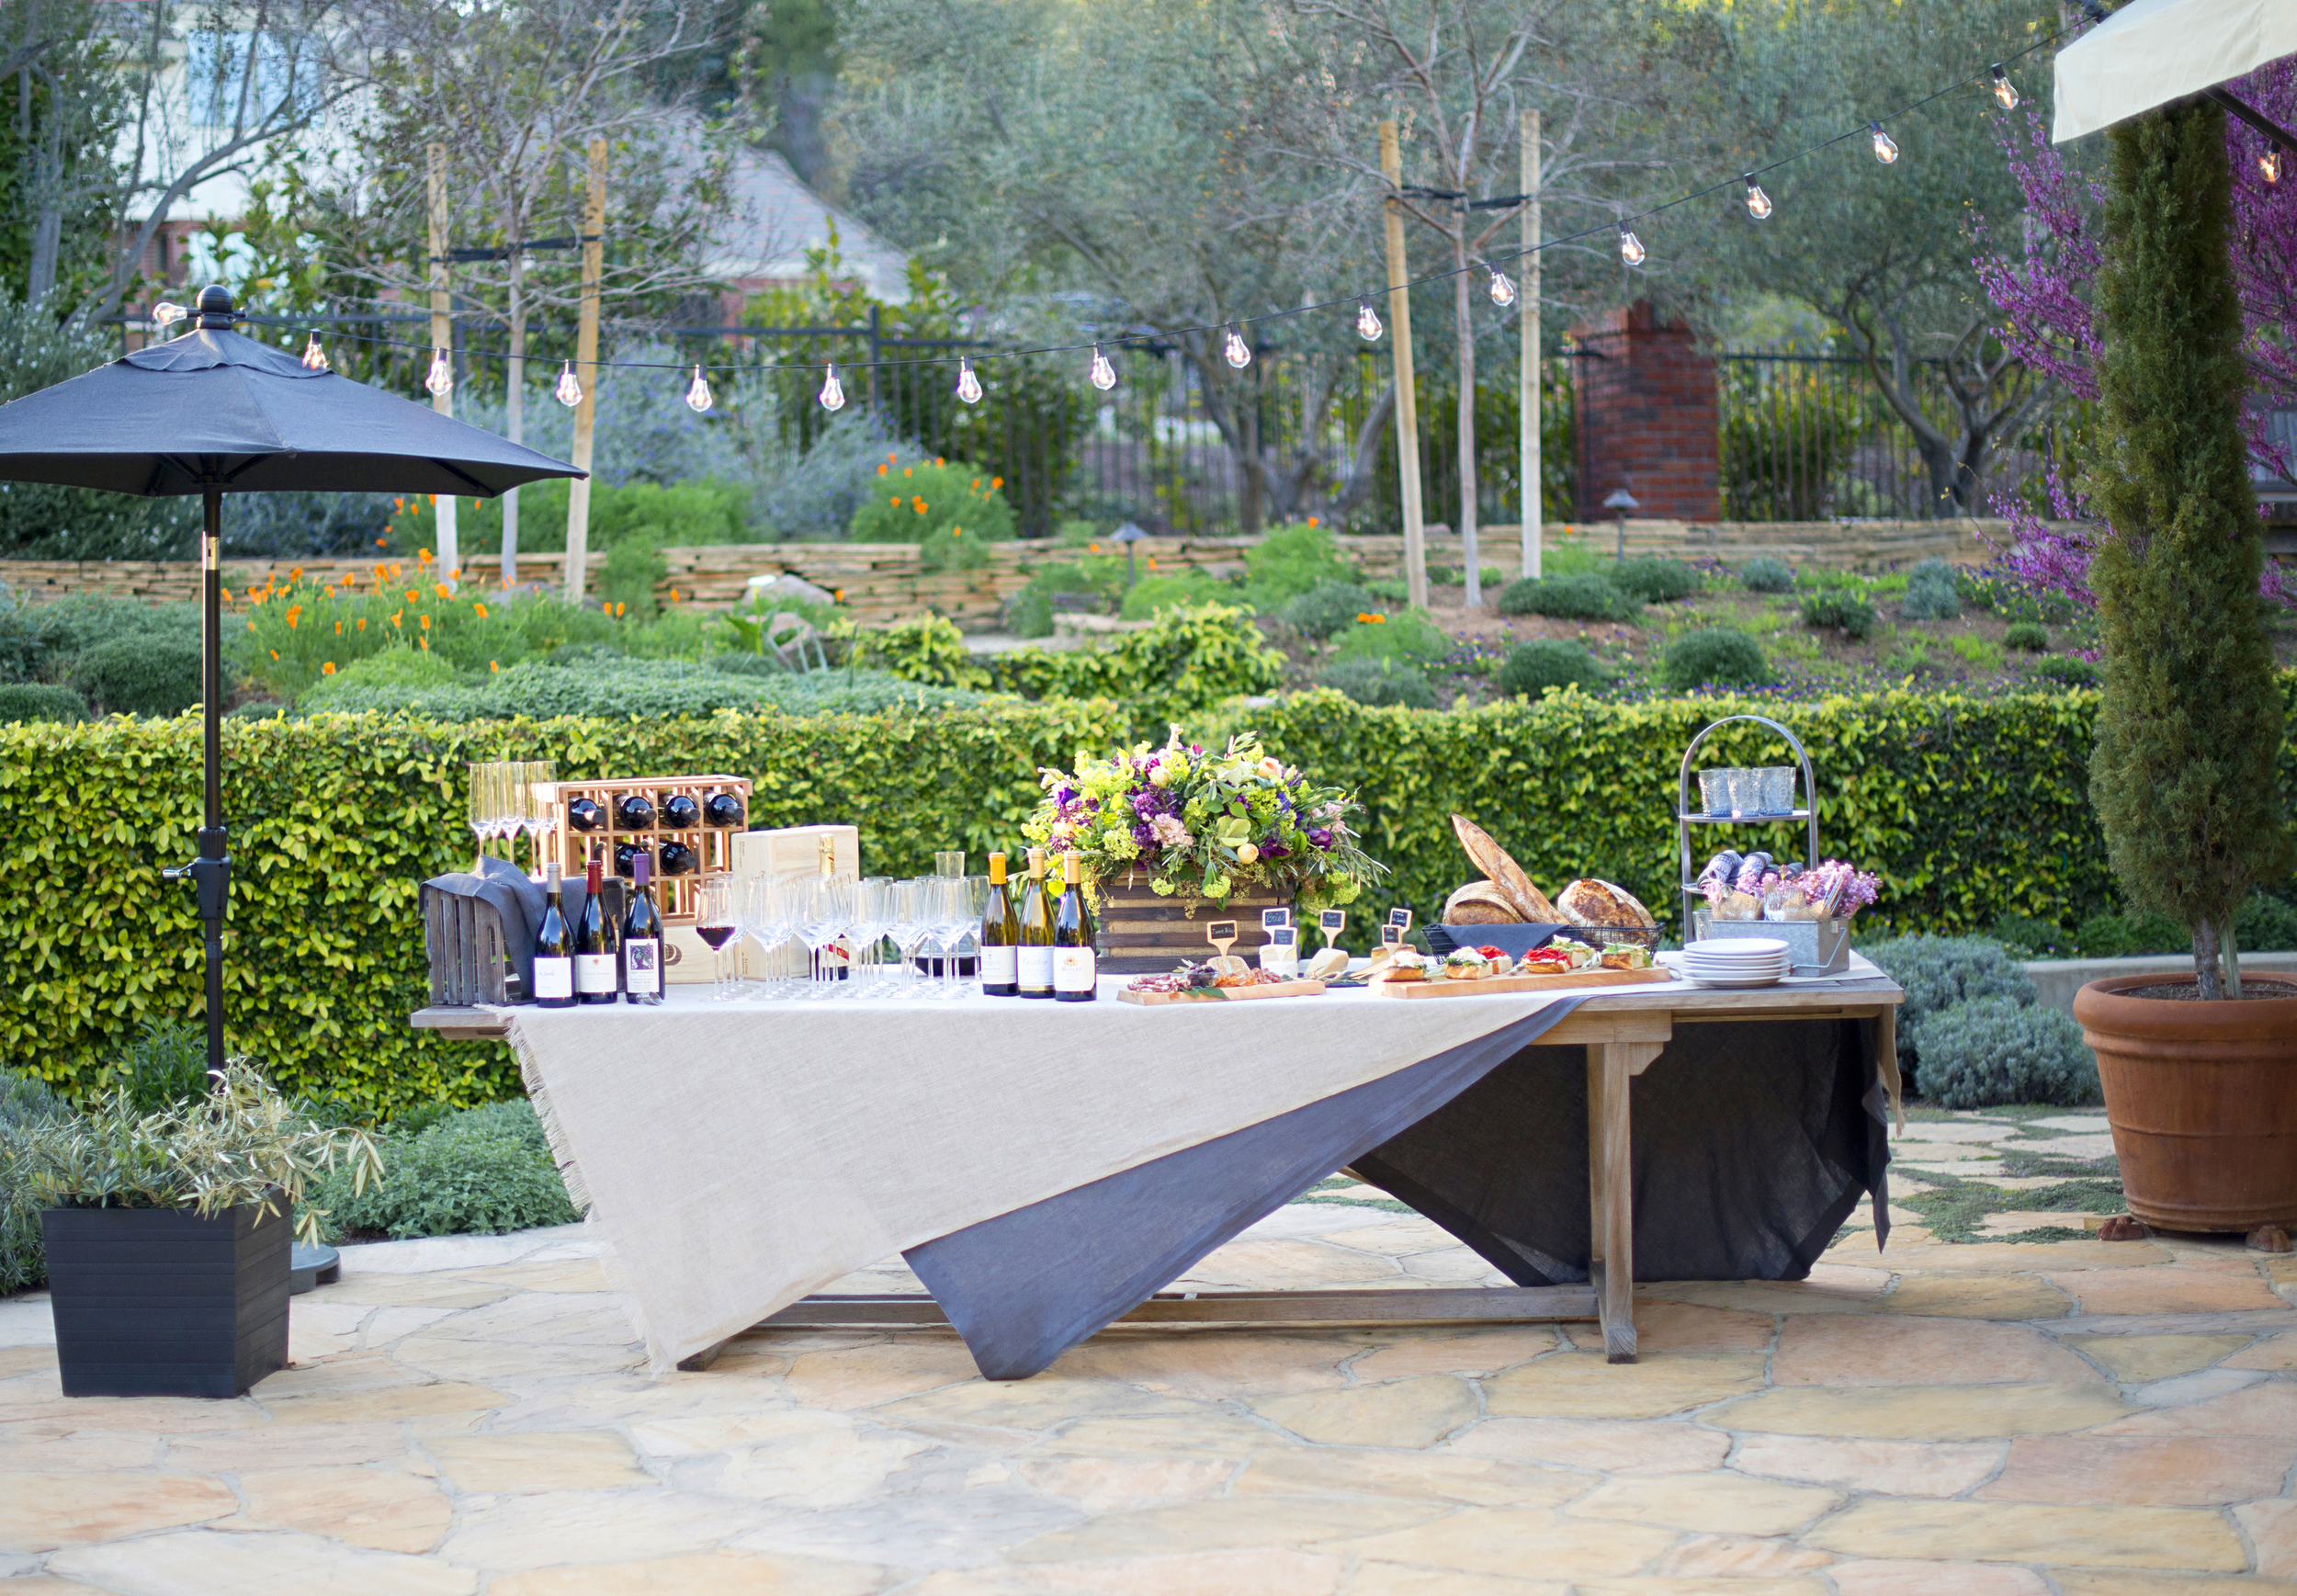 Wine Tasting Garden Party! Host your own with these tips and recipes.